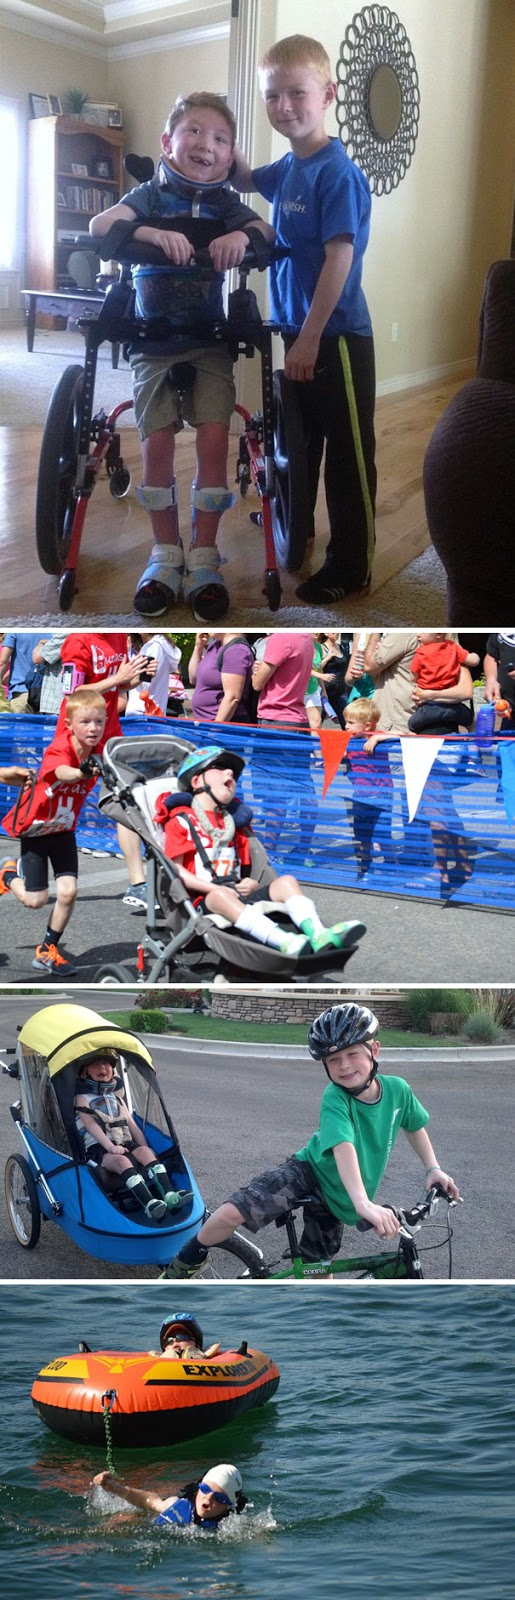 #1 8-Year-Old Noah Completes Mini-Triathlon With His Disabled Brother Lucas - 12 Kids Who'll Restore Your Faith In Humanity